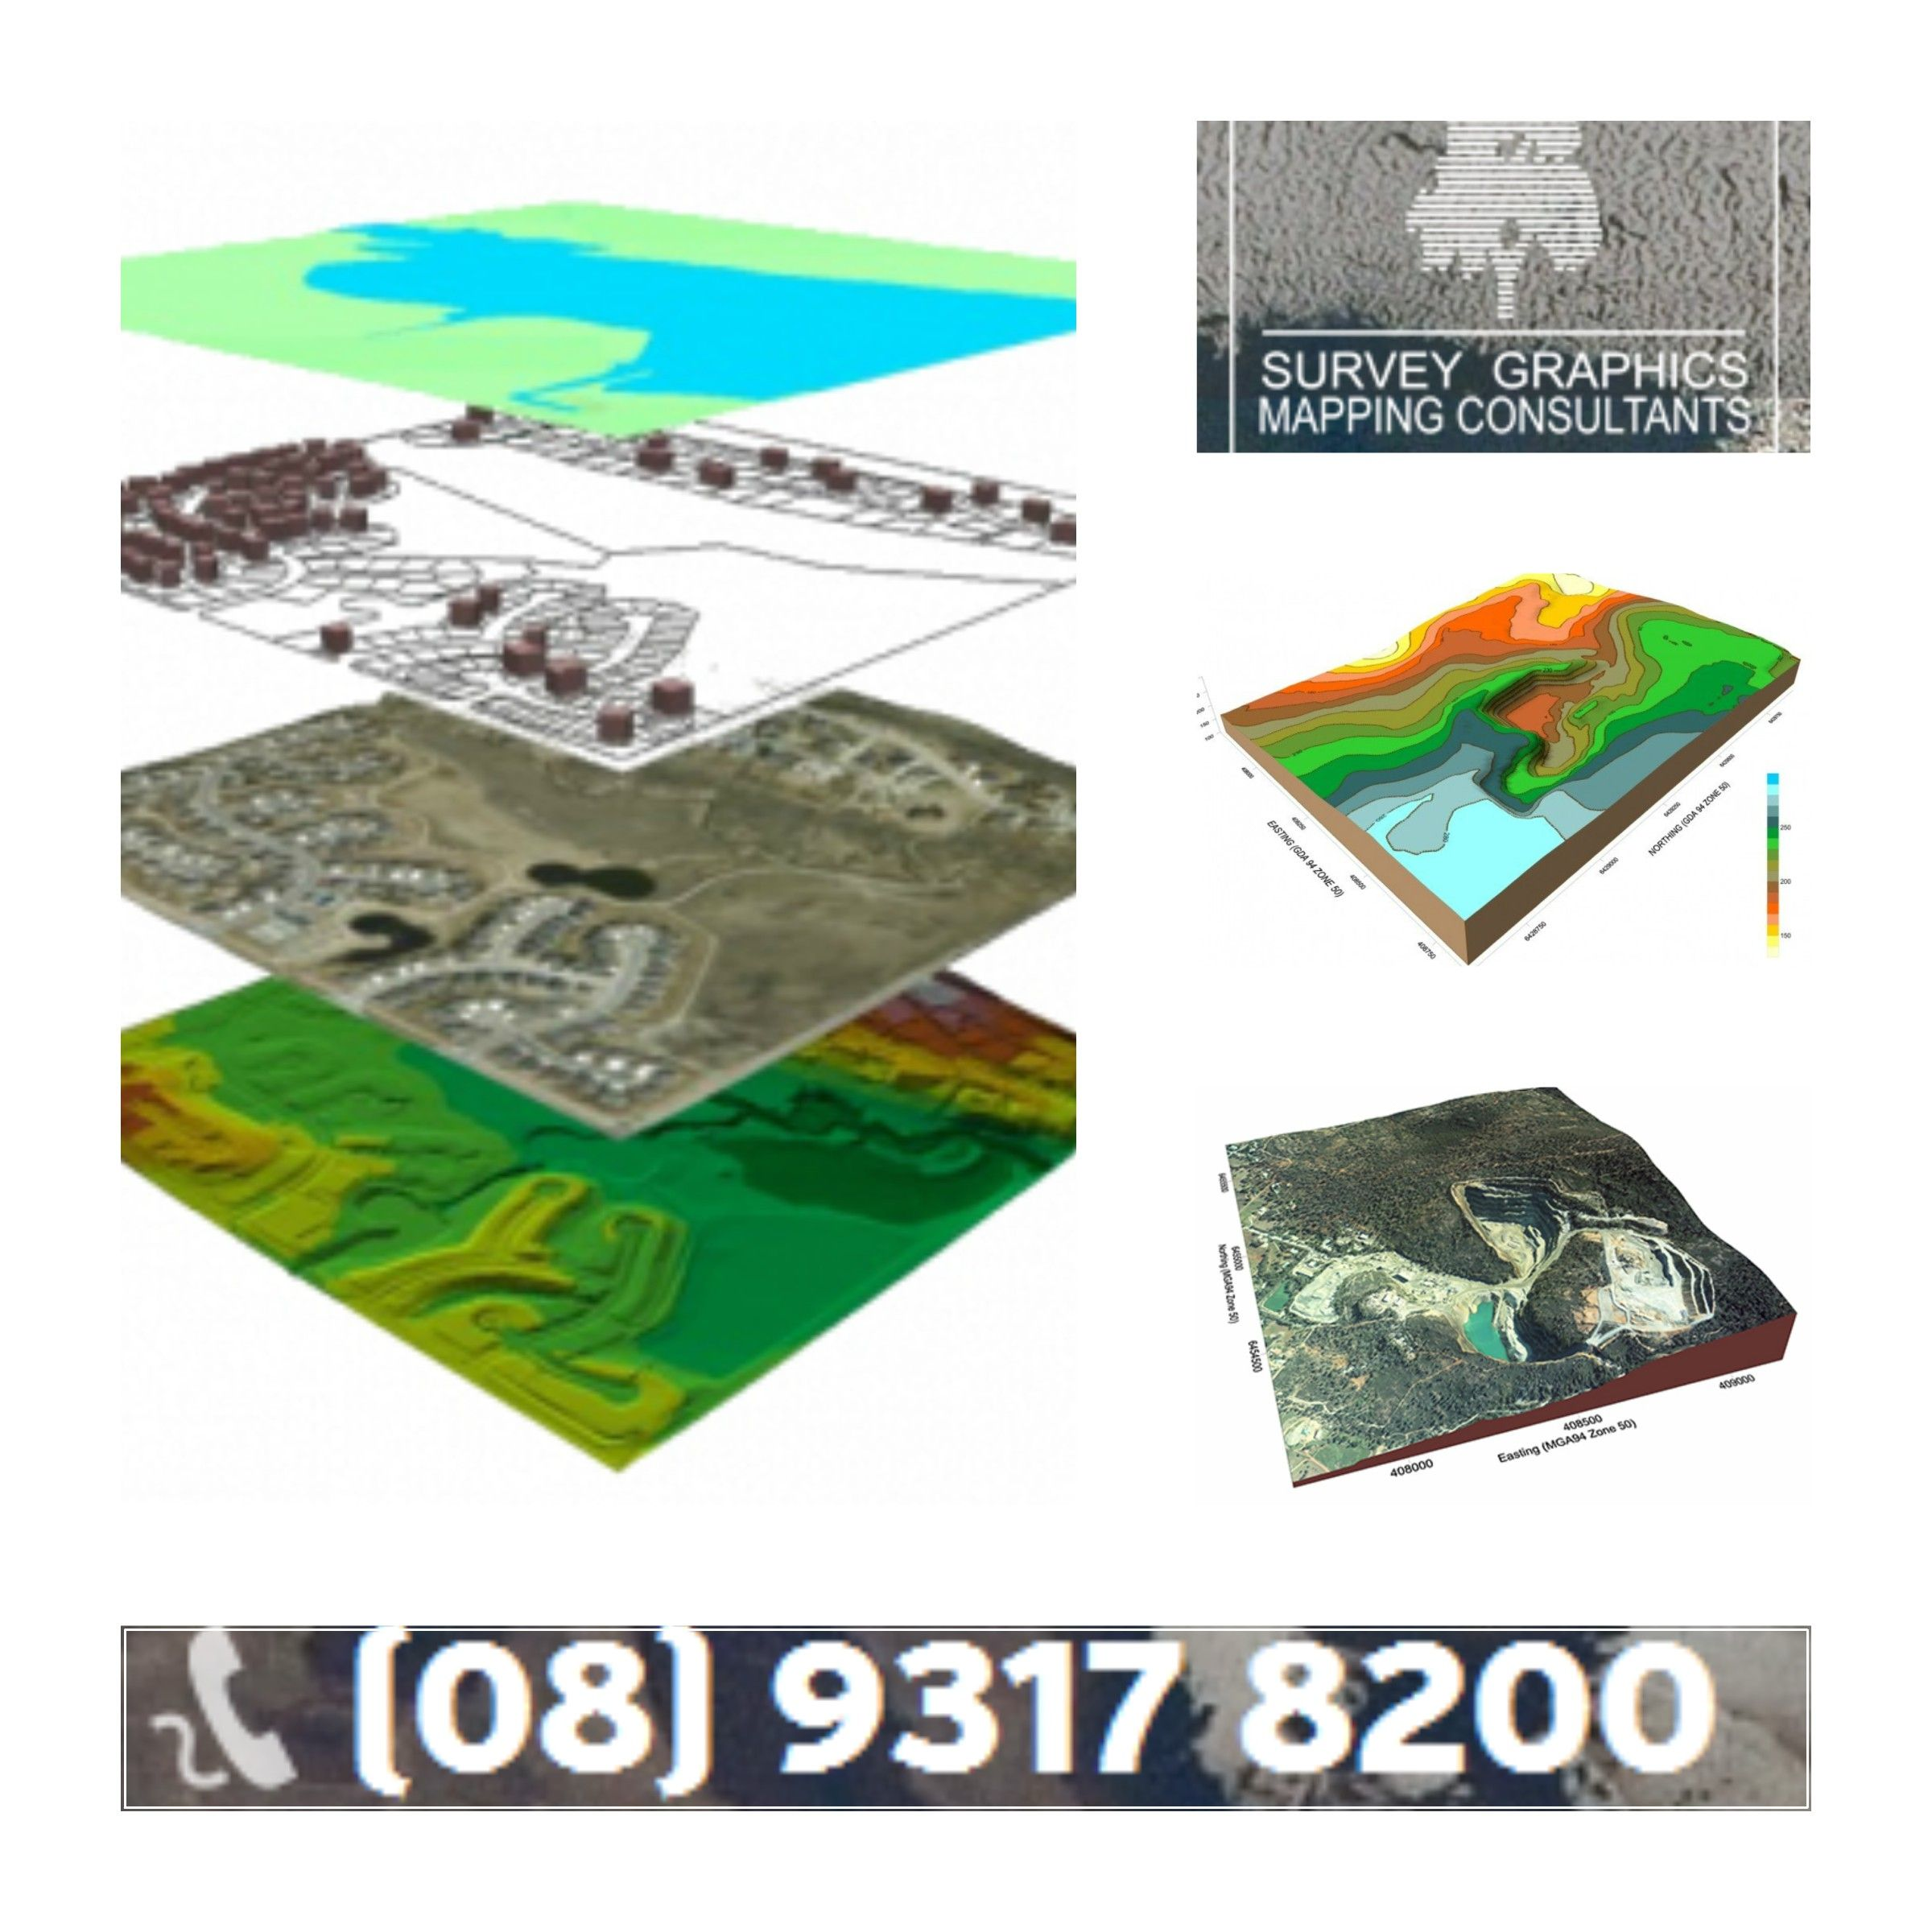 Pin on Survey Graphics Mapping Consultants